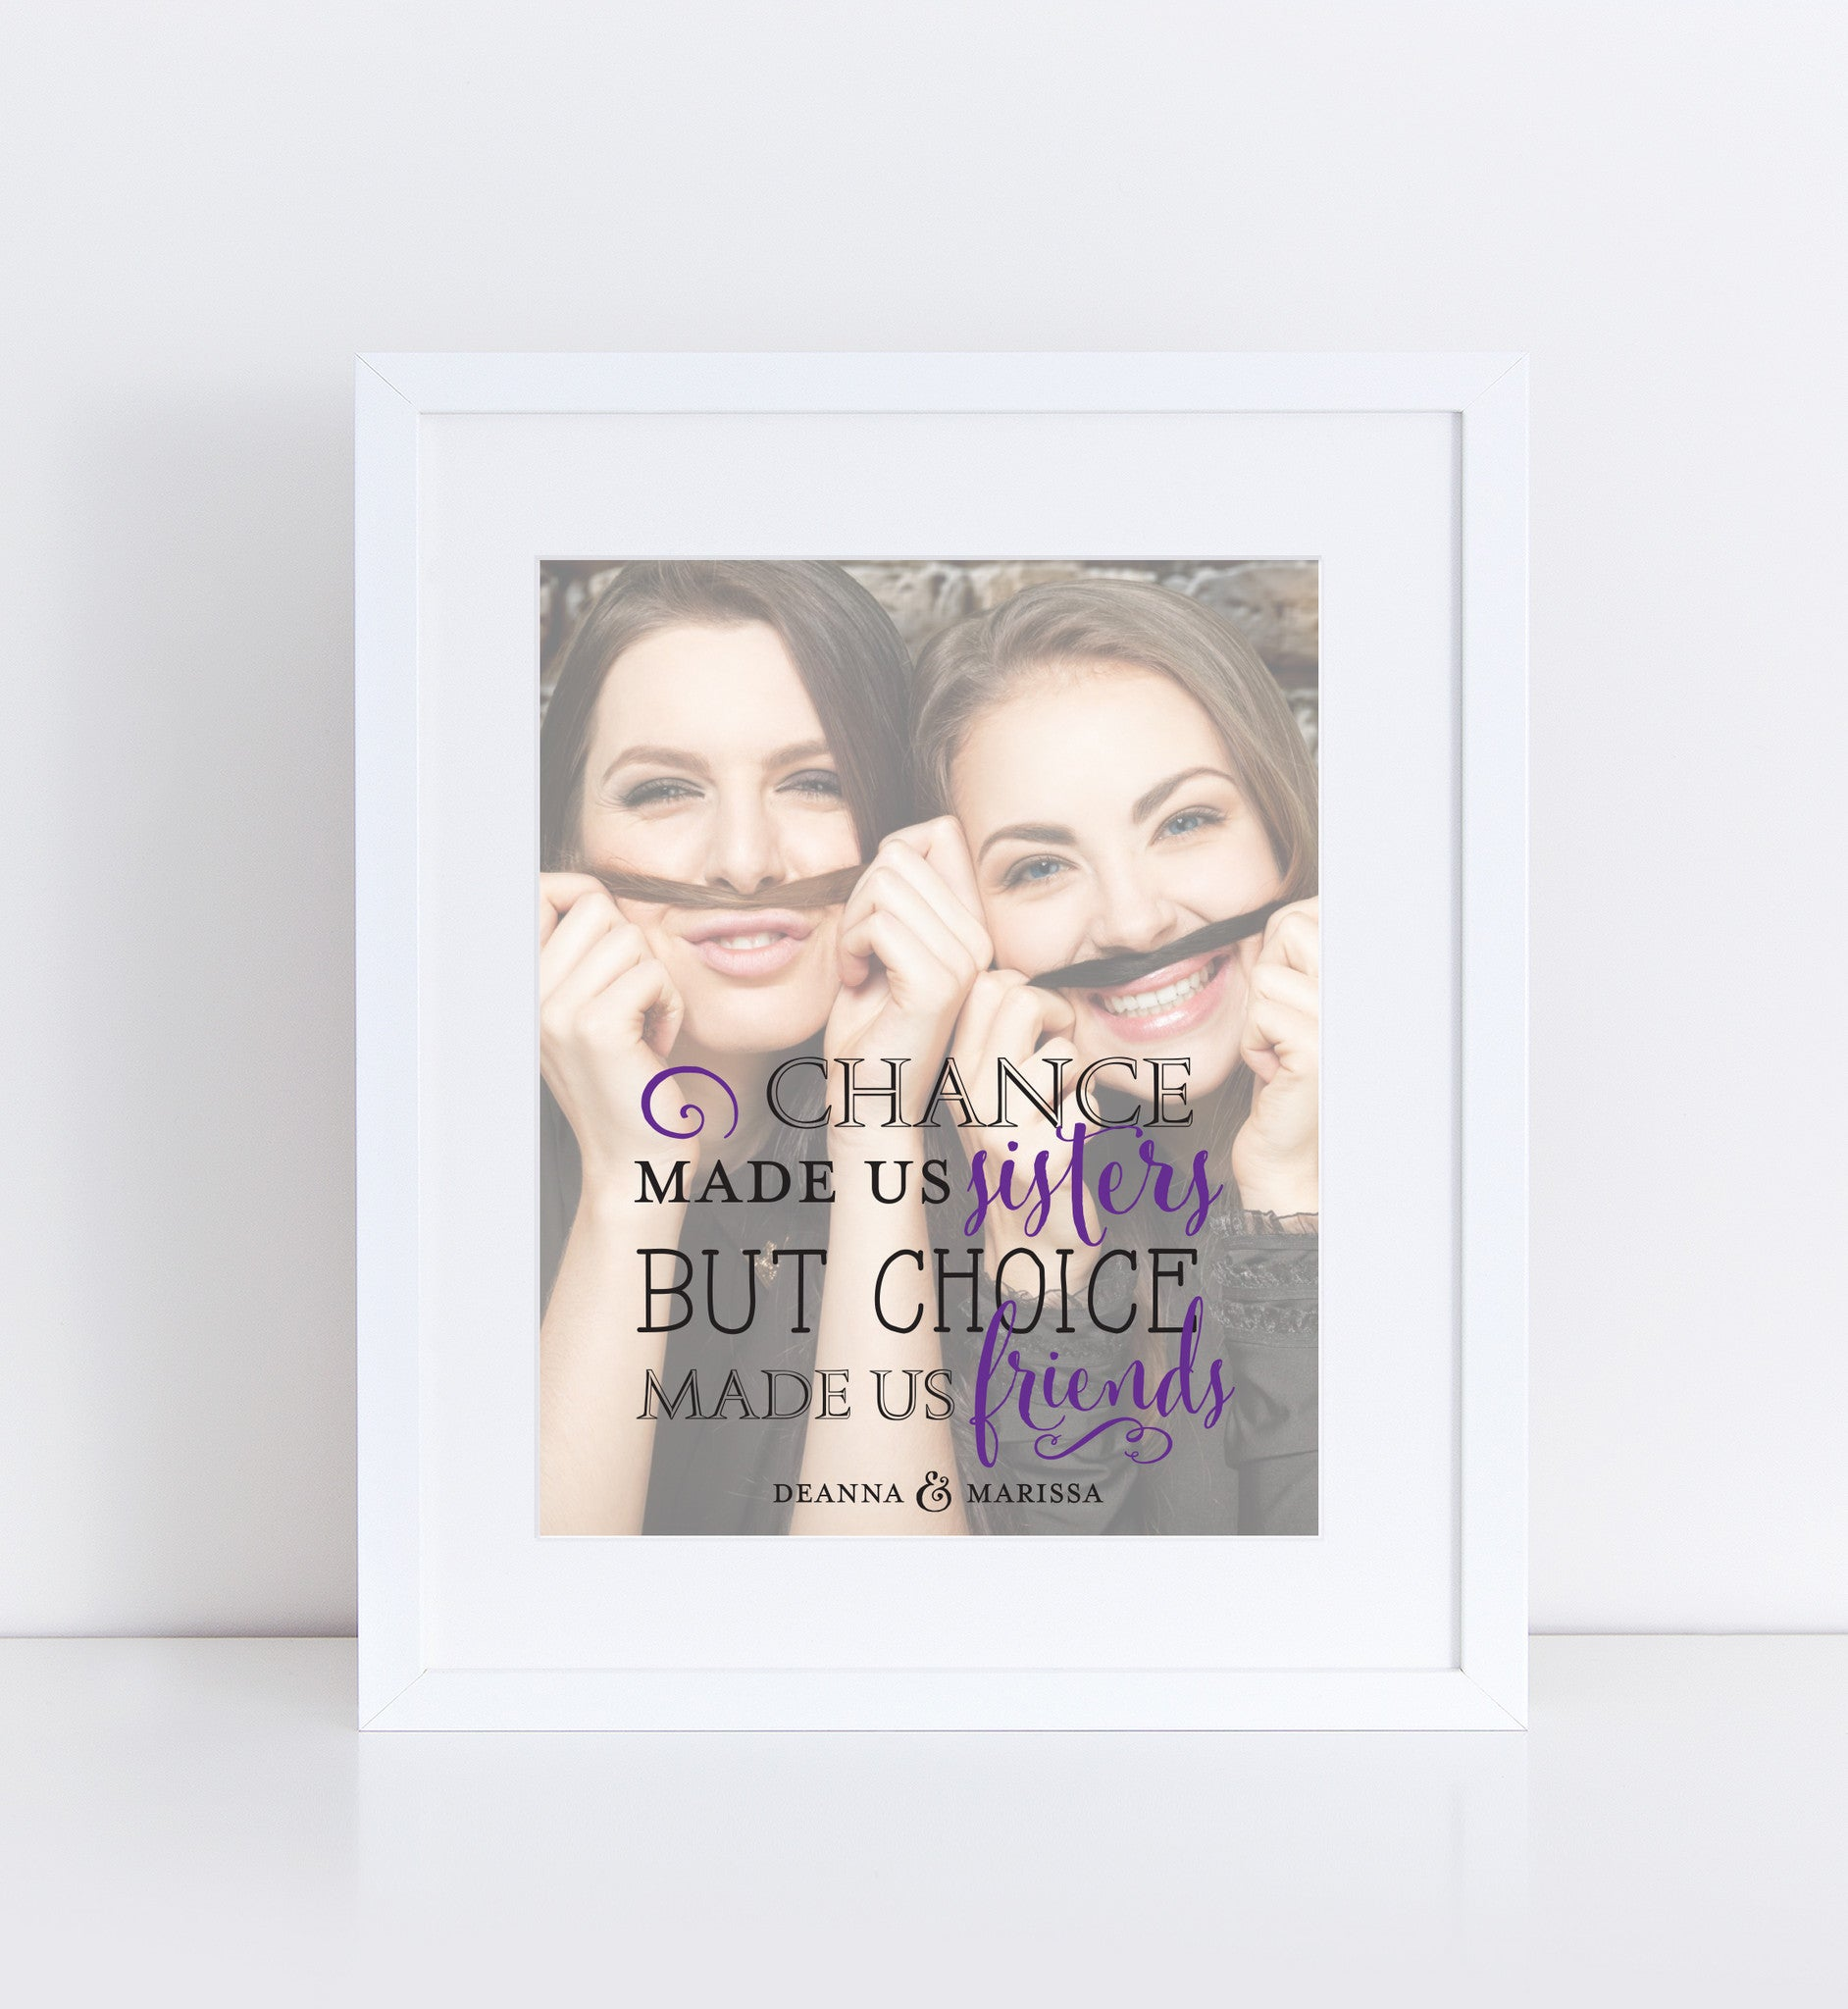 Chances Made Us Sisters Personalized Photo Quote